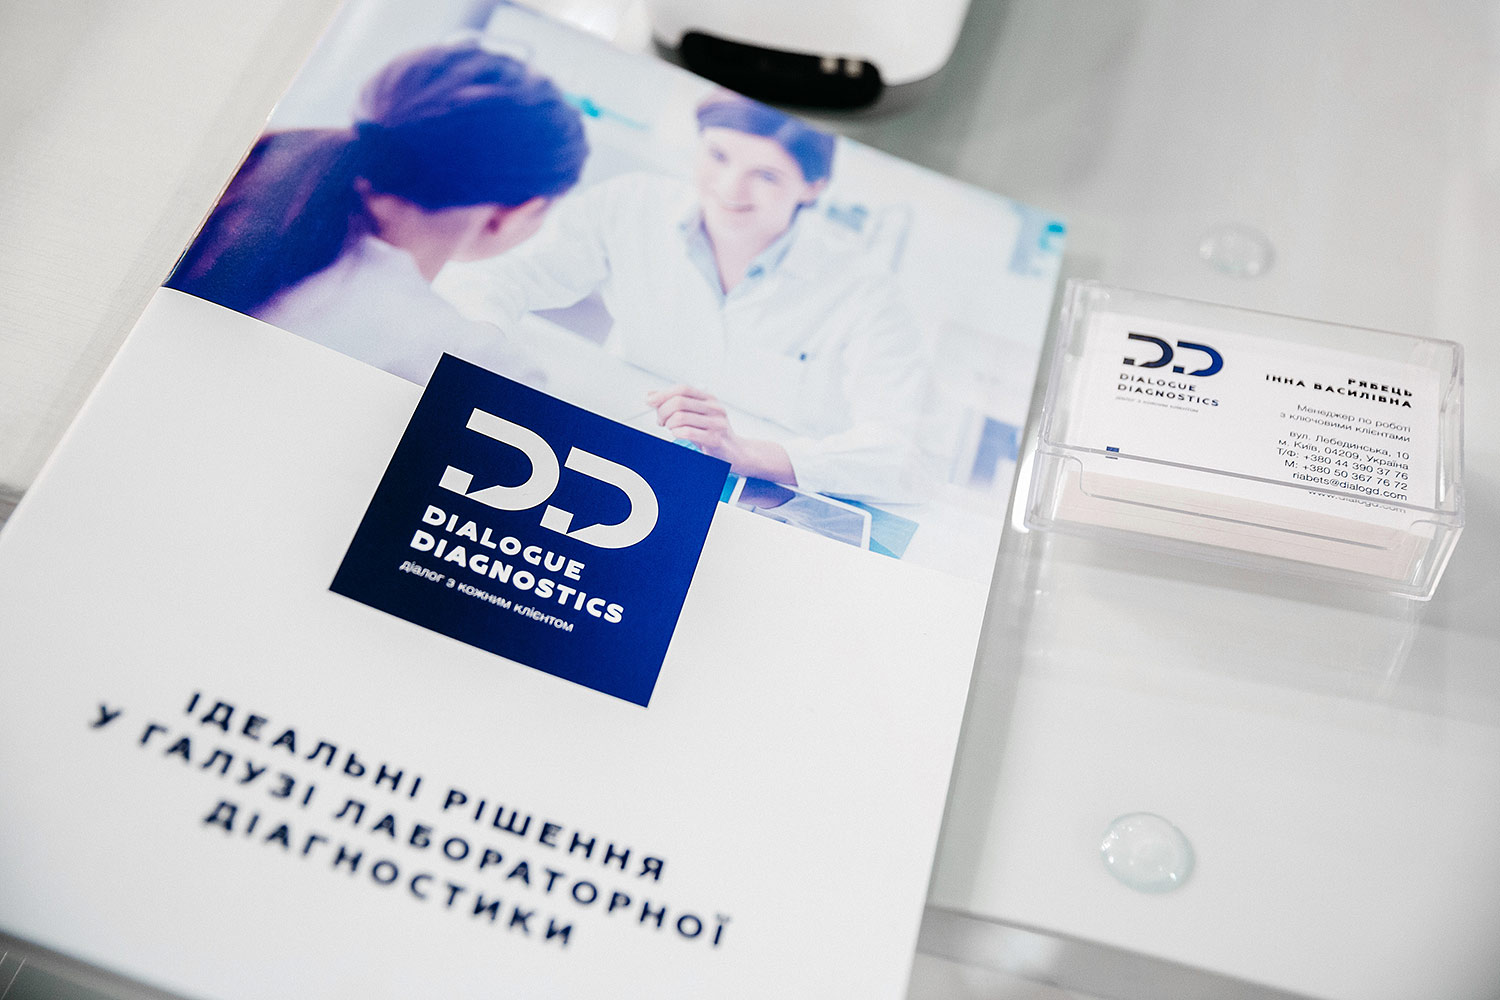 Ideal solutions for laboratory diagnostics. Dialogue Diagnostics information booklet and business cards.